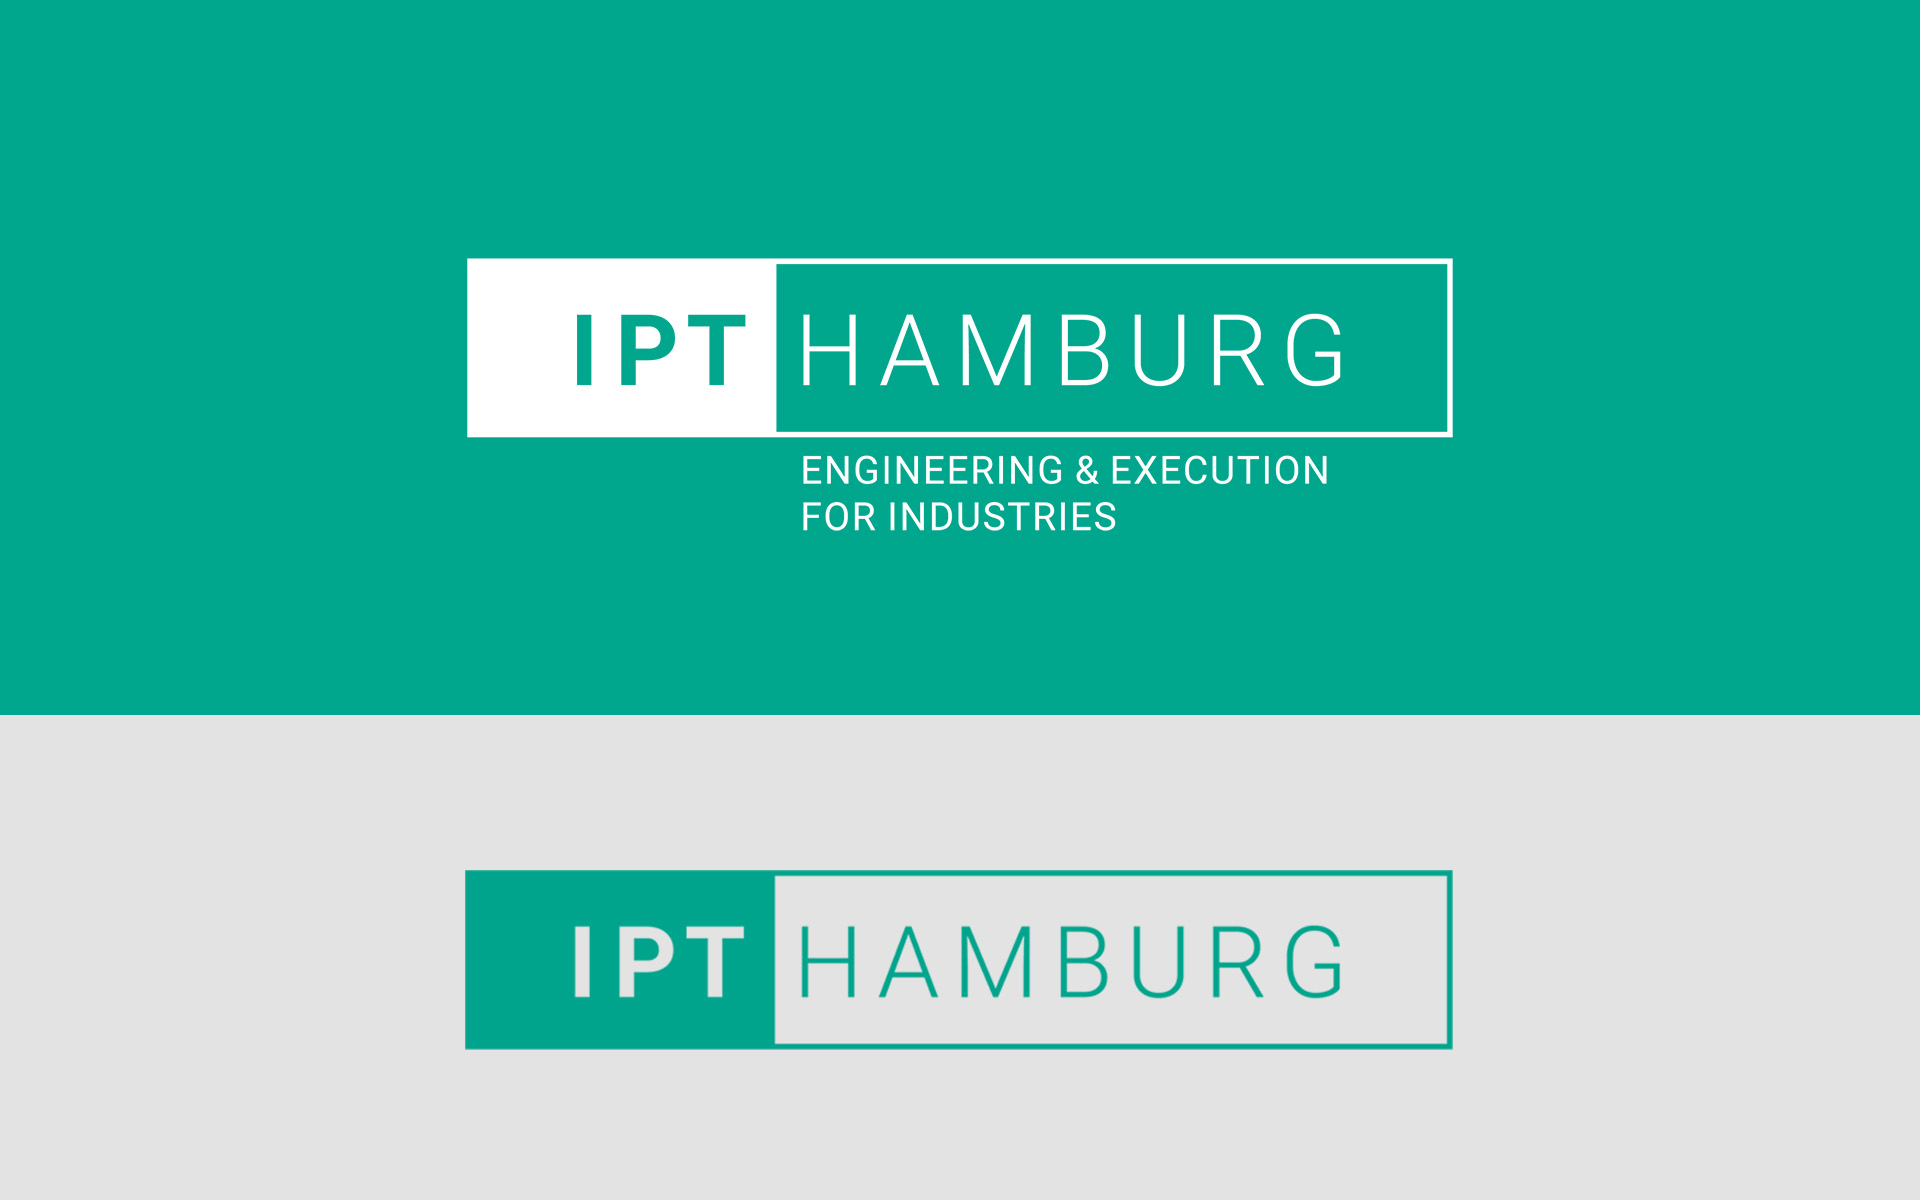 Erscheinungsbild, Web-Design, Website, Layout, Corporate Design, Ipt Hamburg, Bennet Grüttner